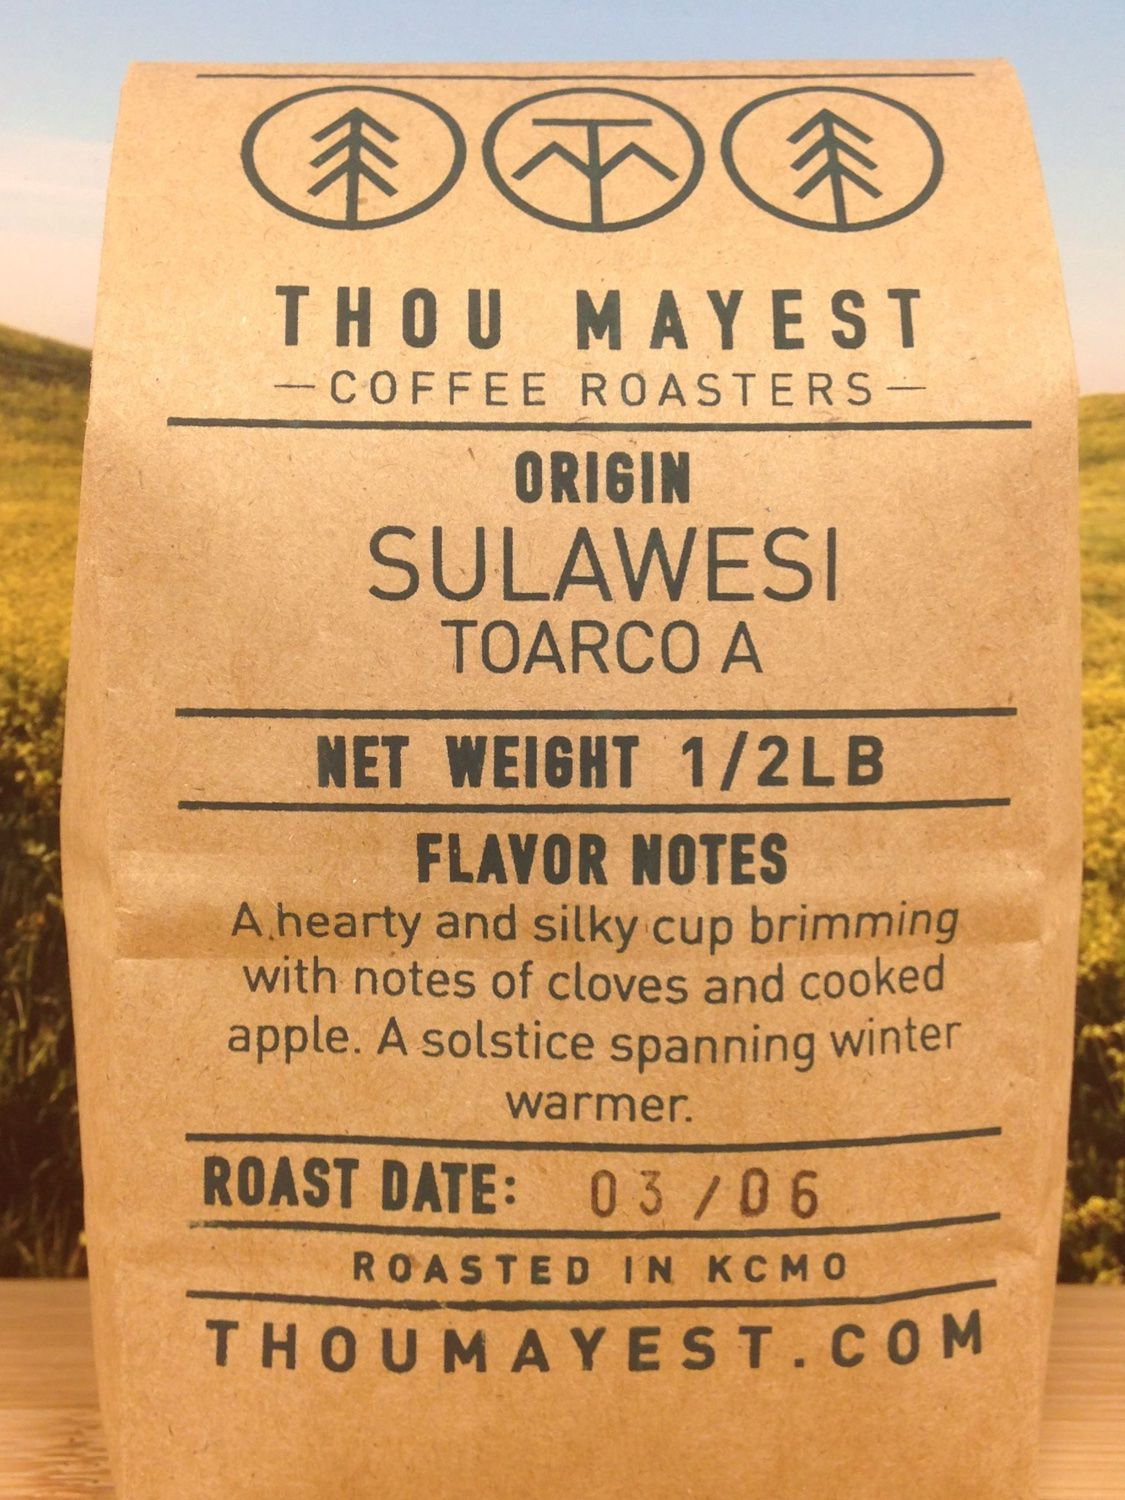 Sulawesi TOARCO A from Thou Mayest